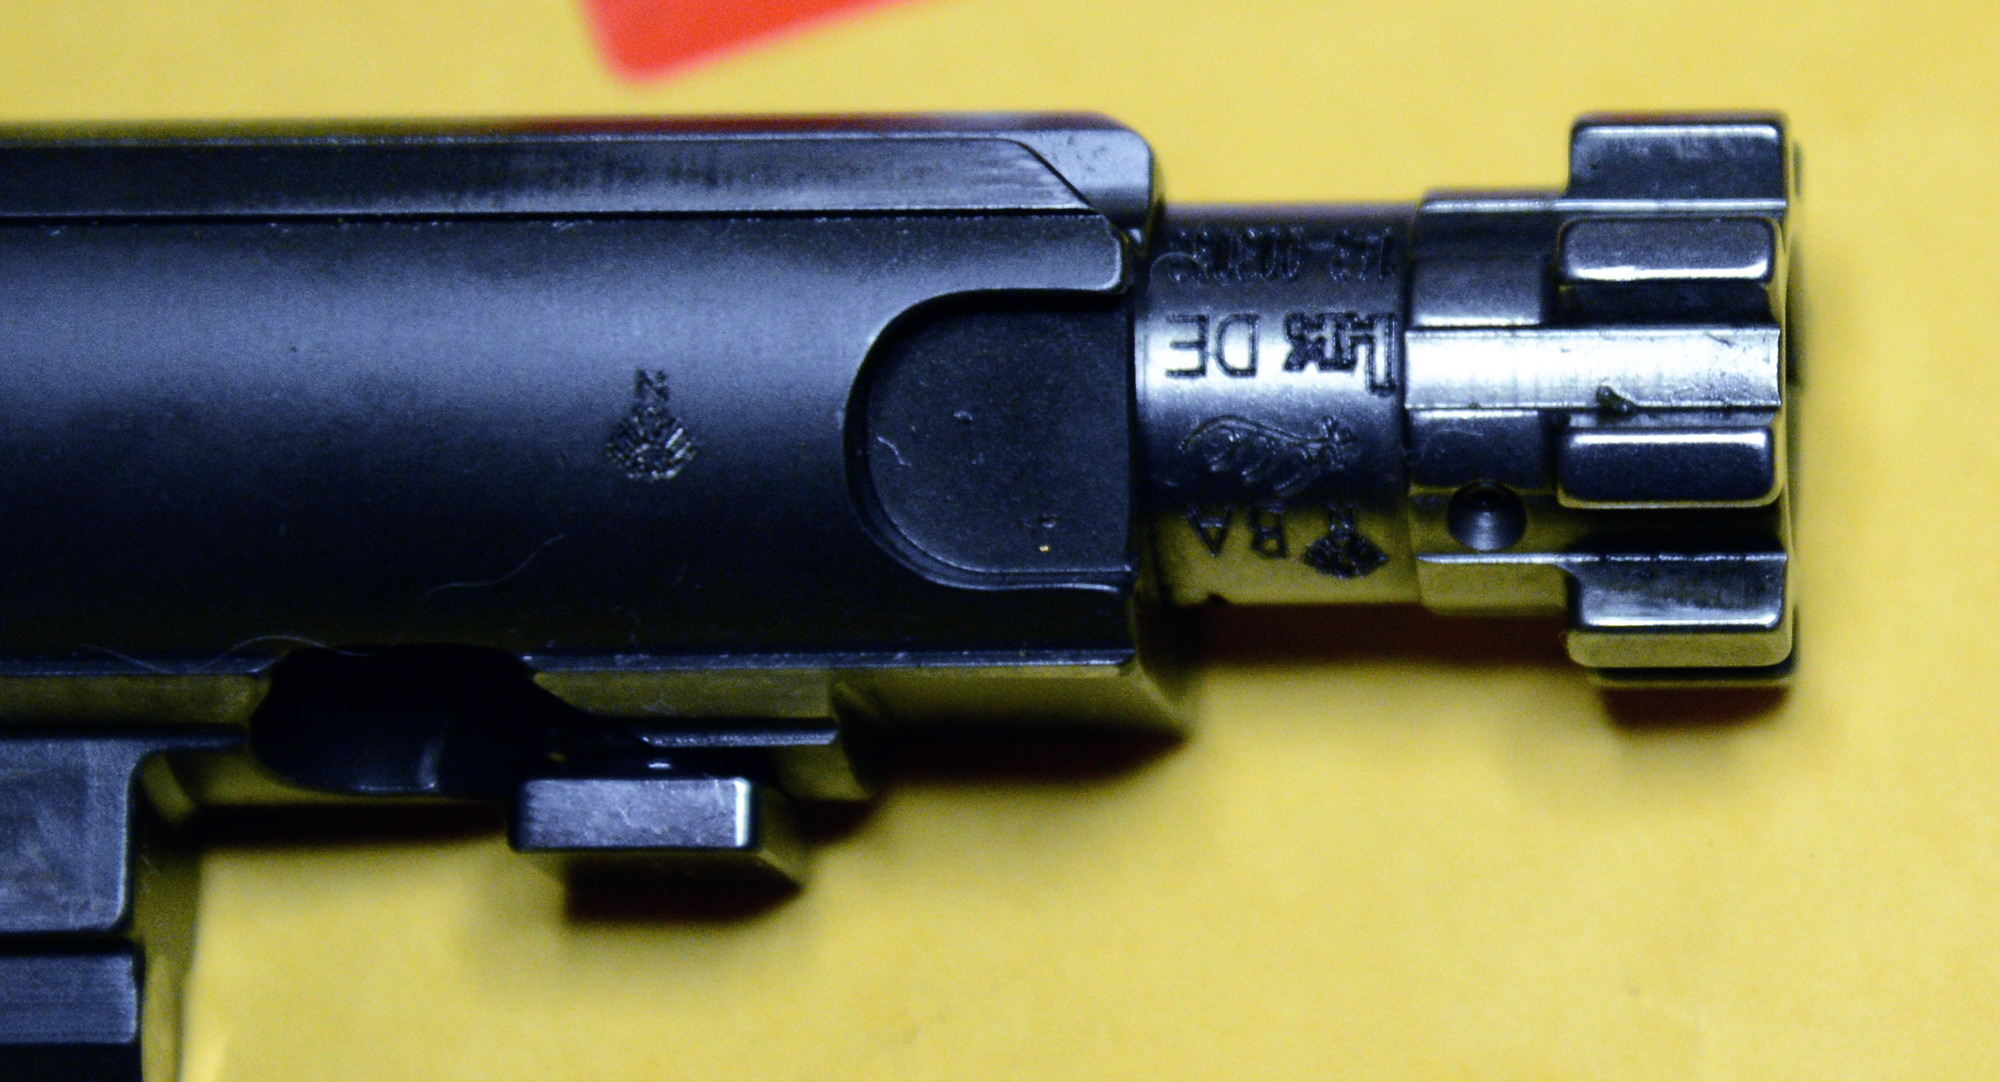 My new MR556A1 has BAD keyhole issues  - Page 3